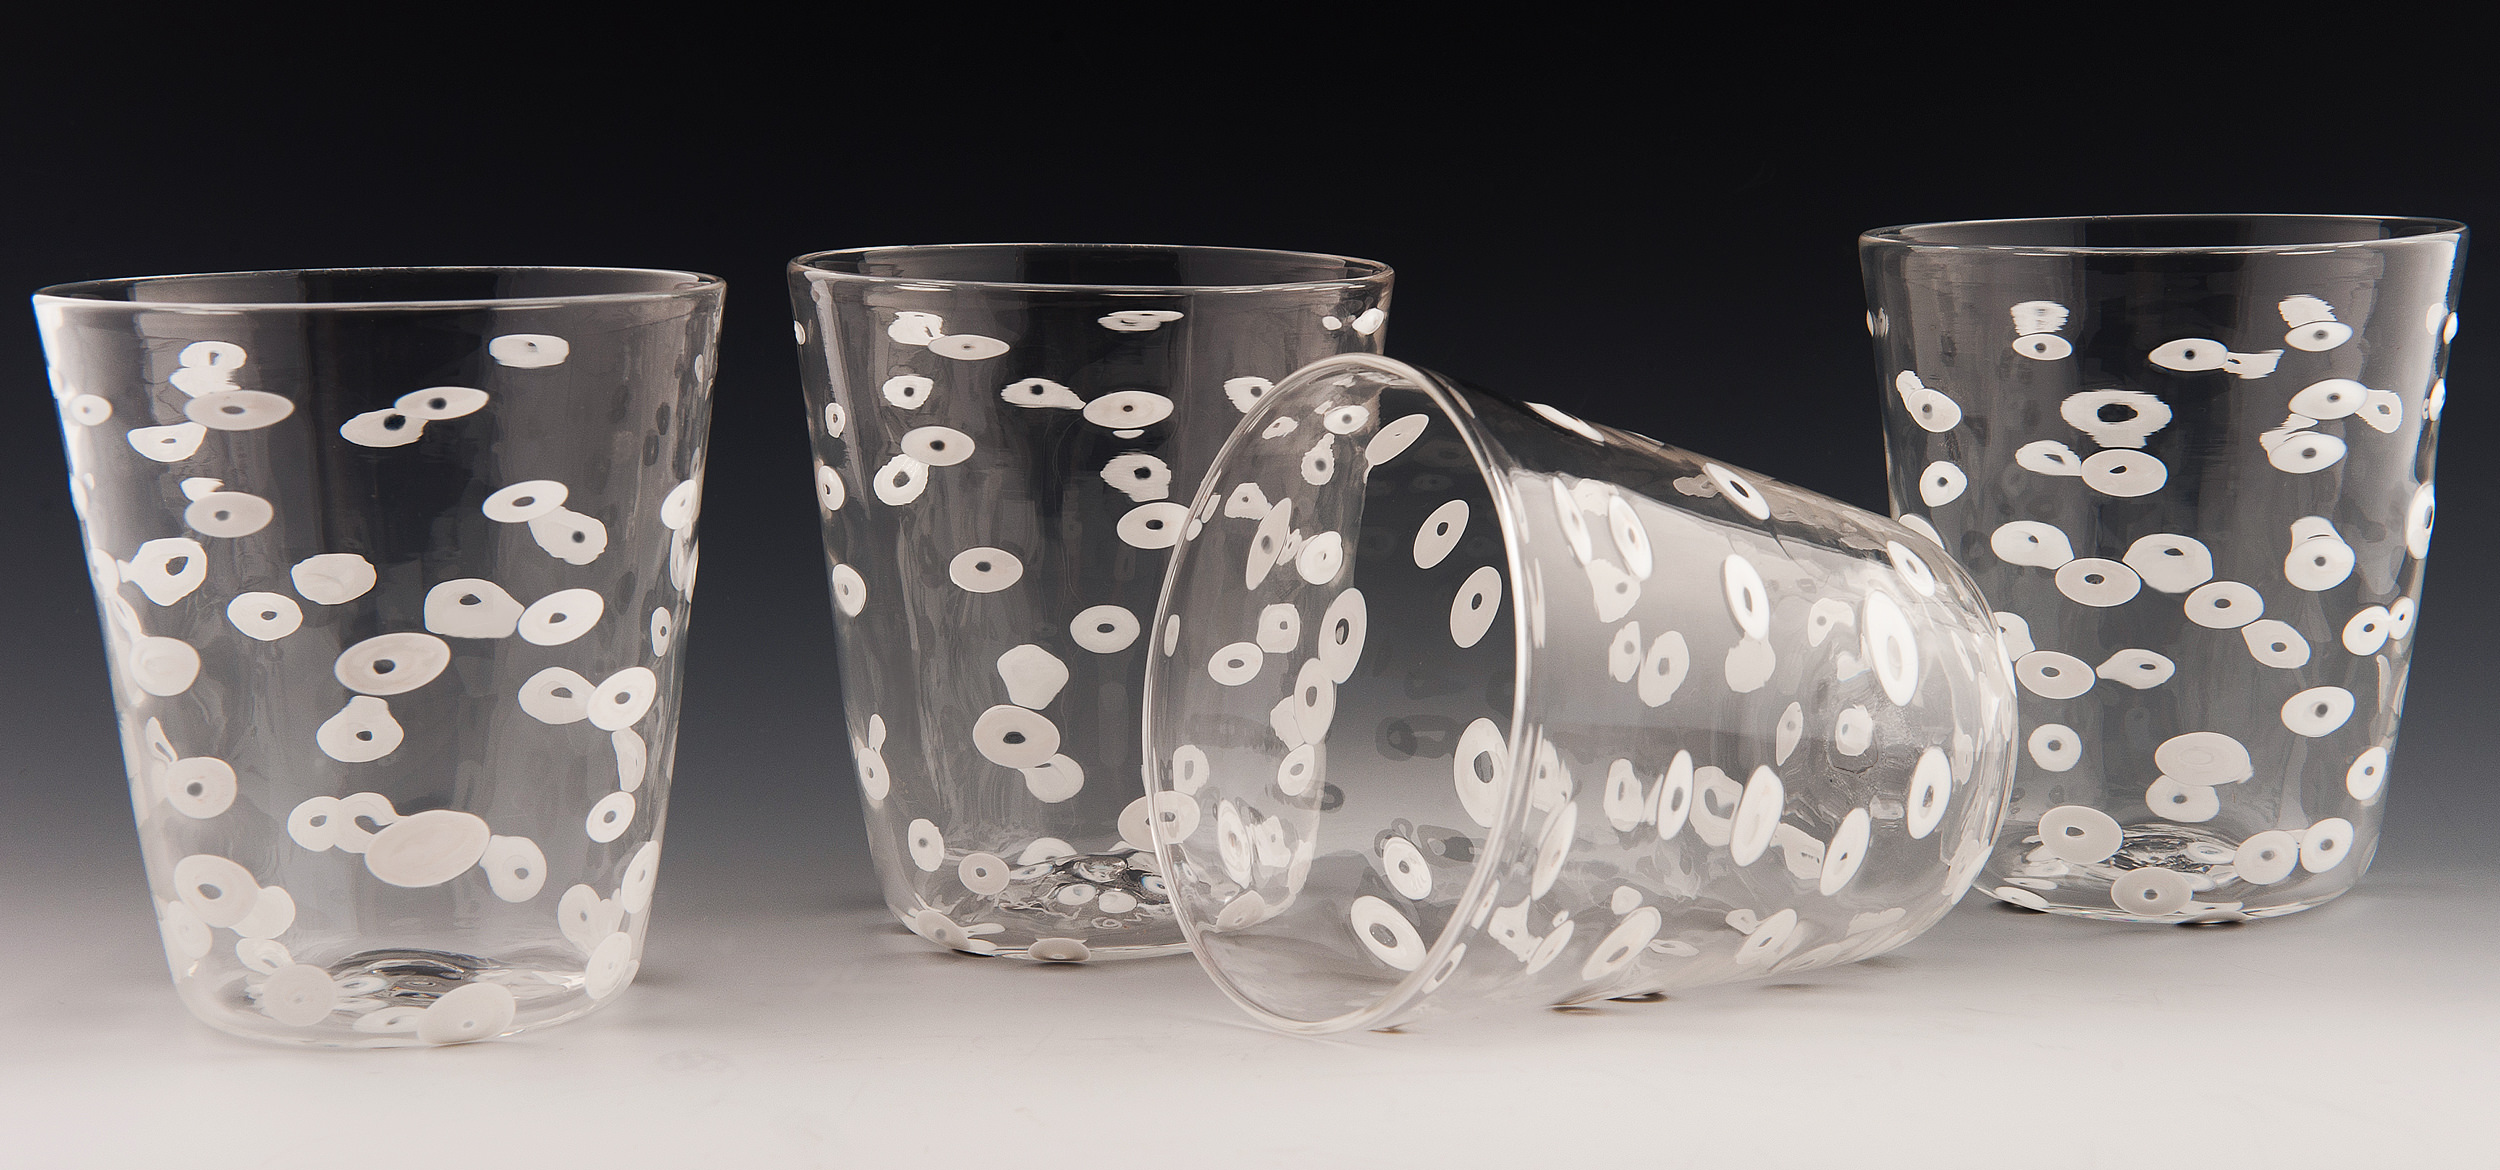 O Tumblers seen here in clear glass with white circles.